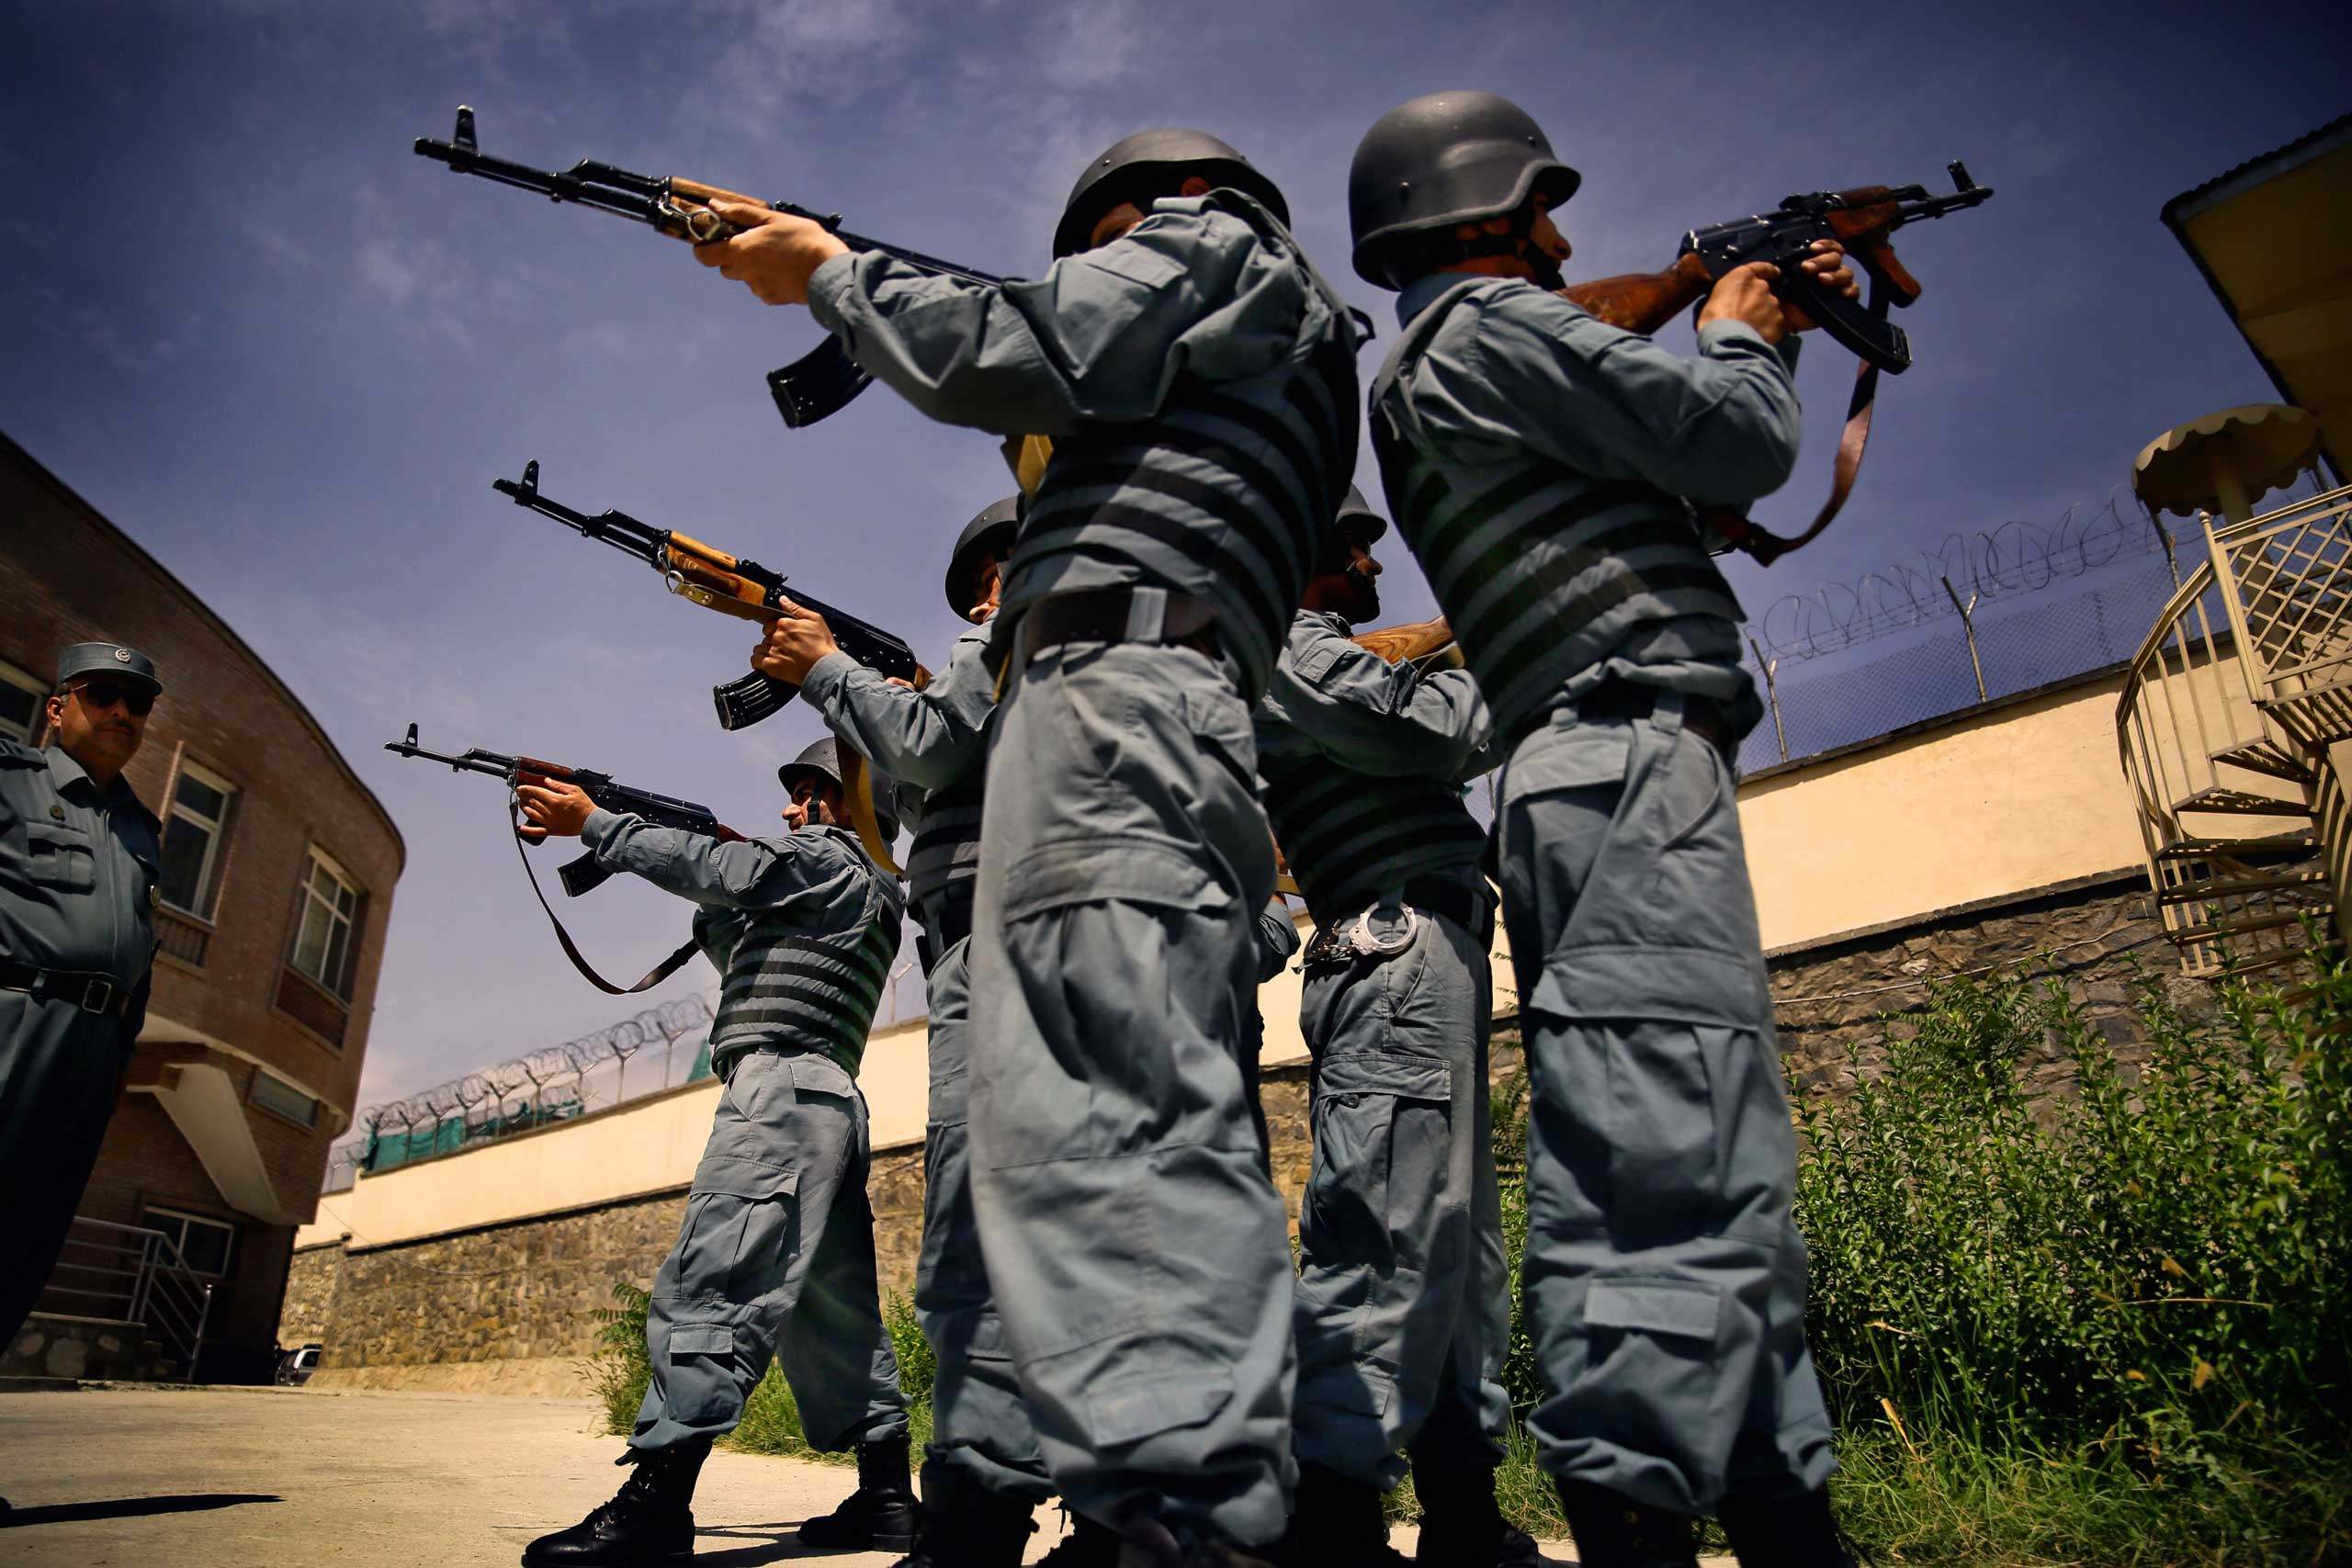 Afghan National Police officers from the Anti-Narcotics Quick Reaction Force (ANQRF) aim back-to-back holding Kalashnikov rifles as they performs exercises at a training centre in Kabul on Aug. 26, 2014.